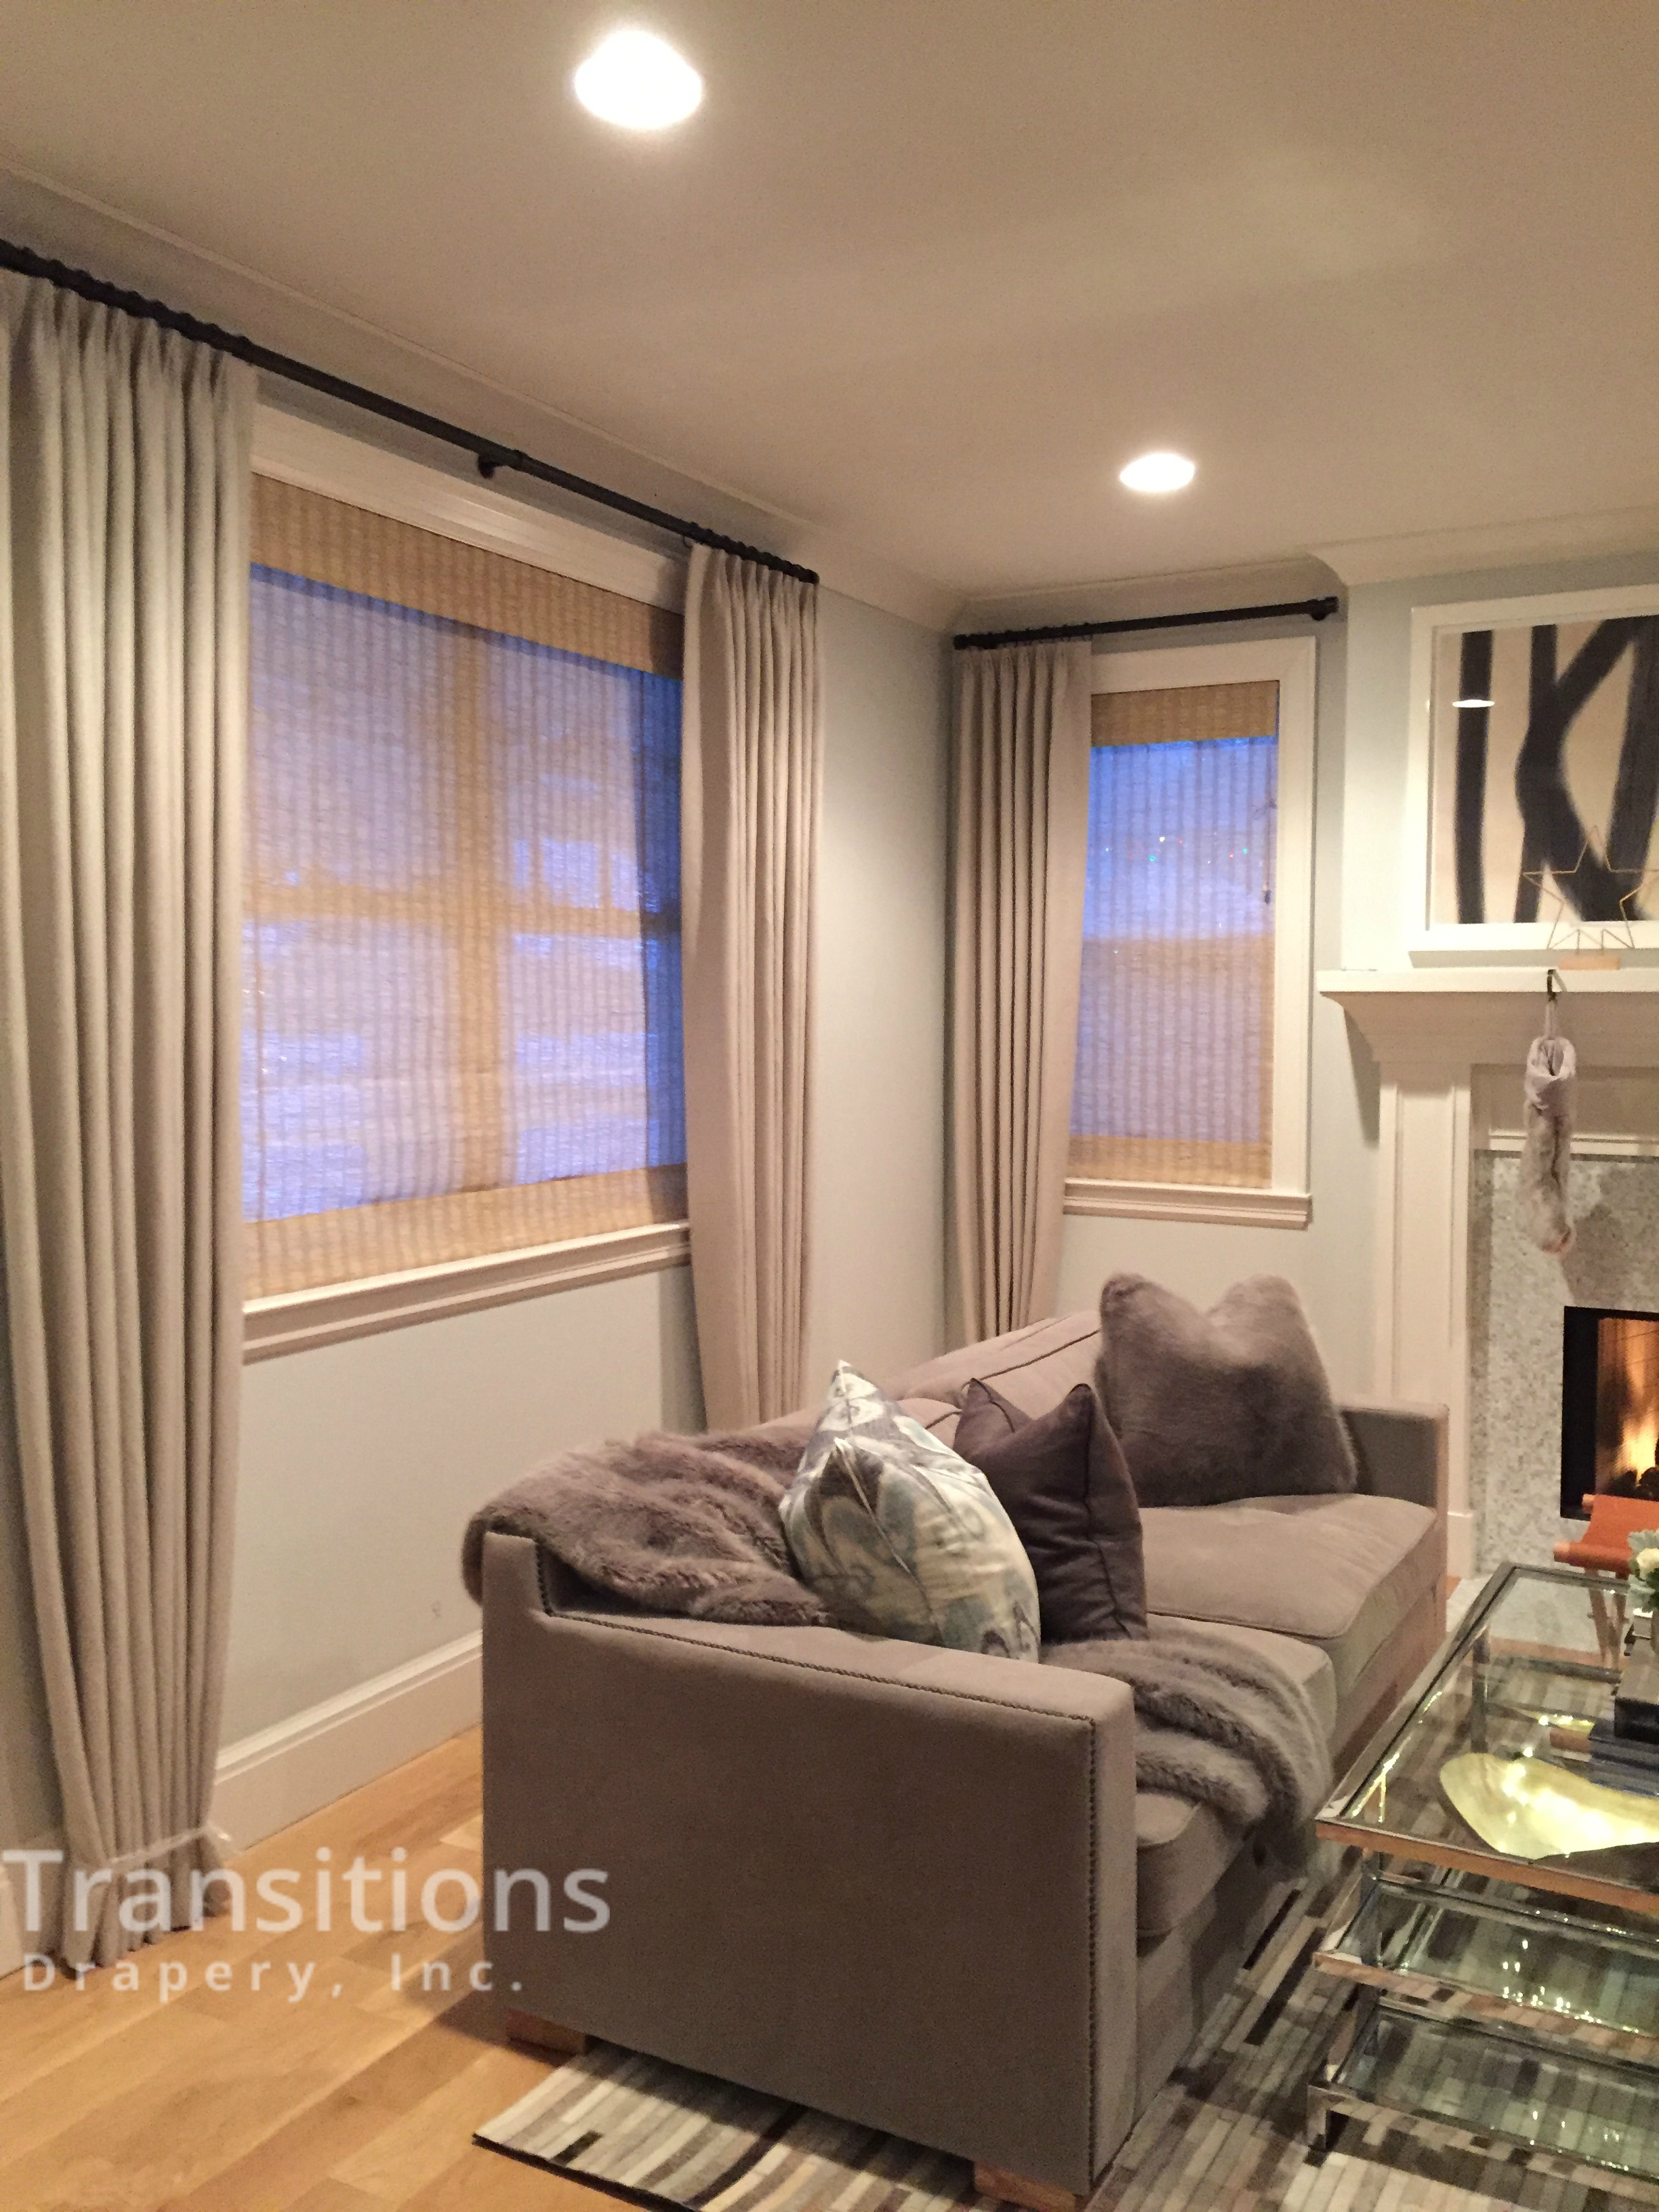 Side view of neutral drapes and shades